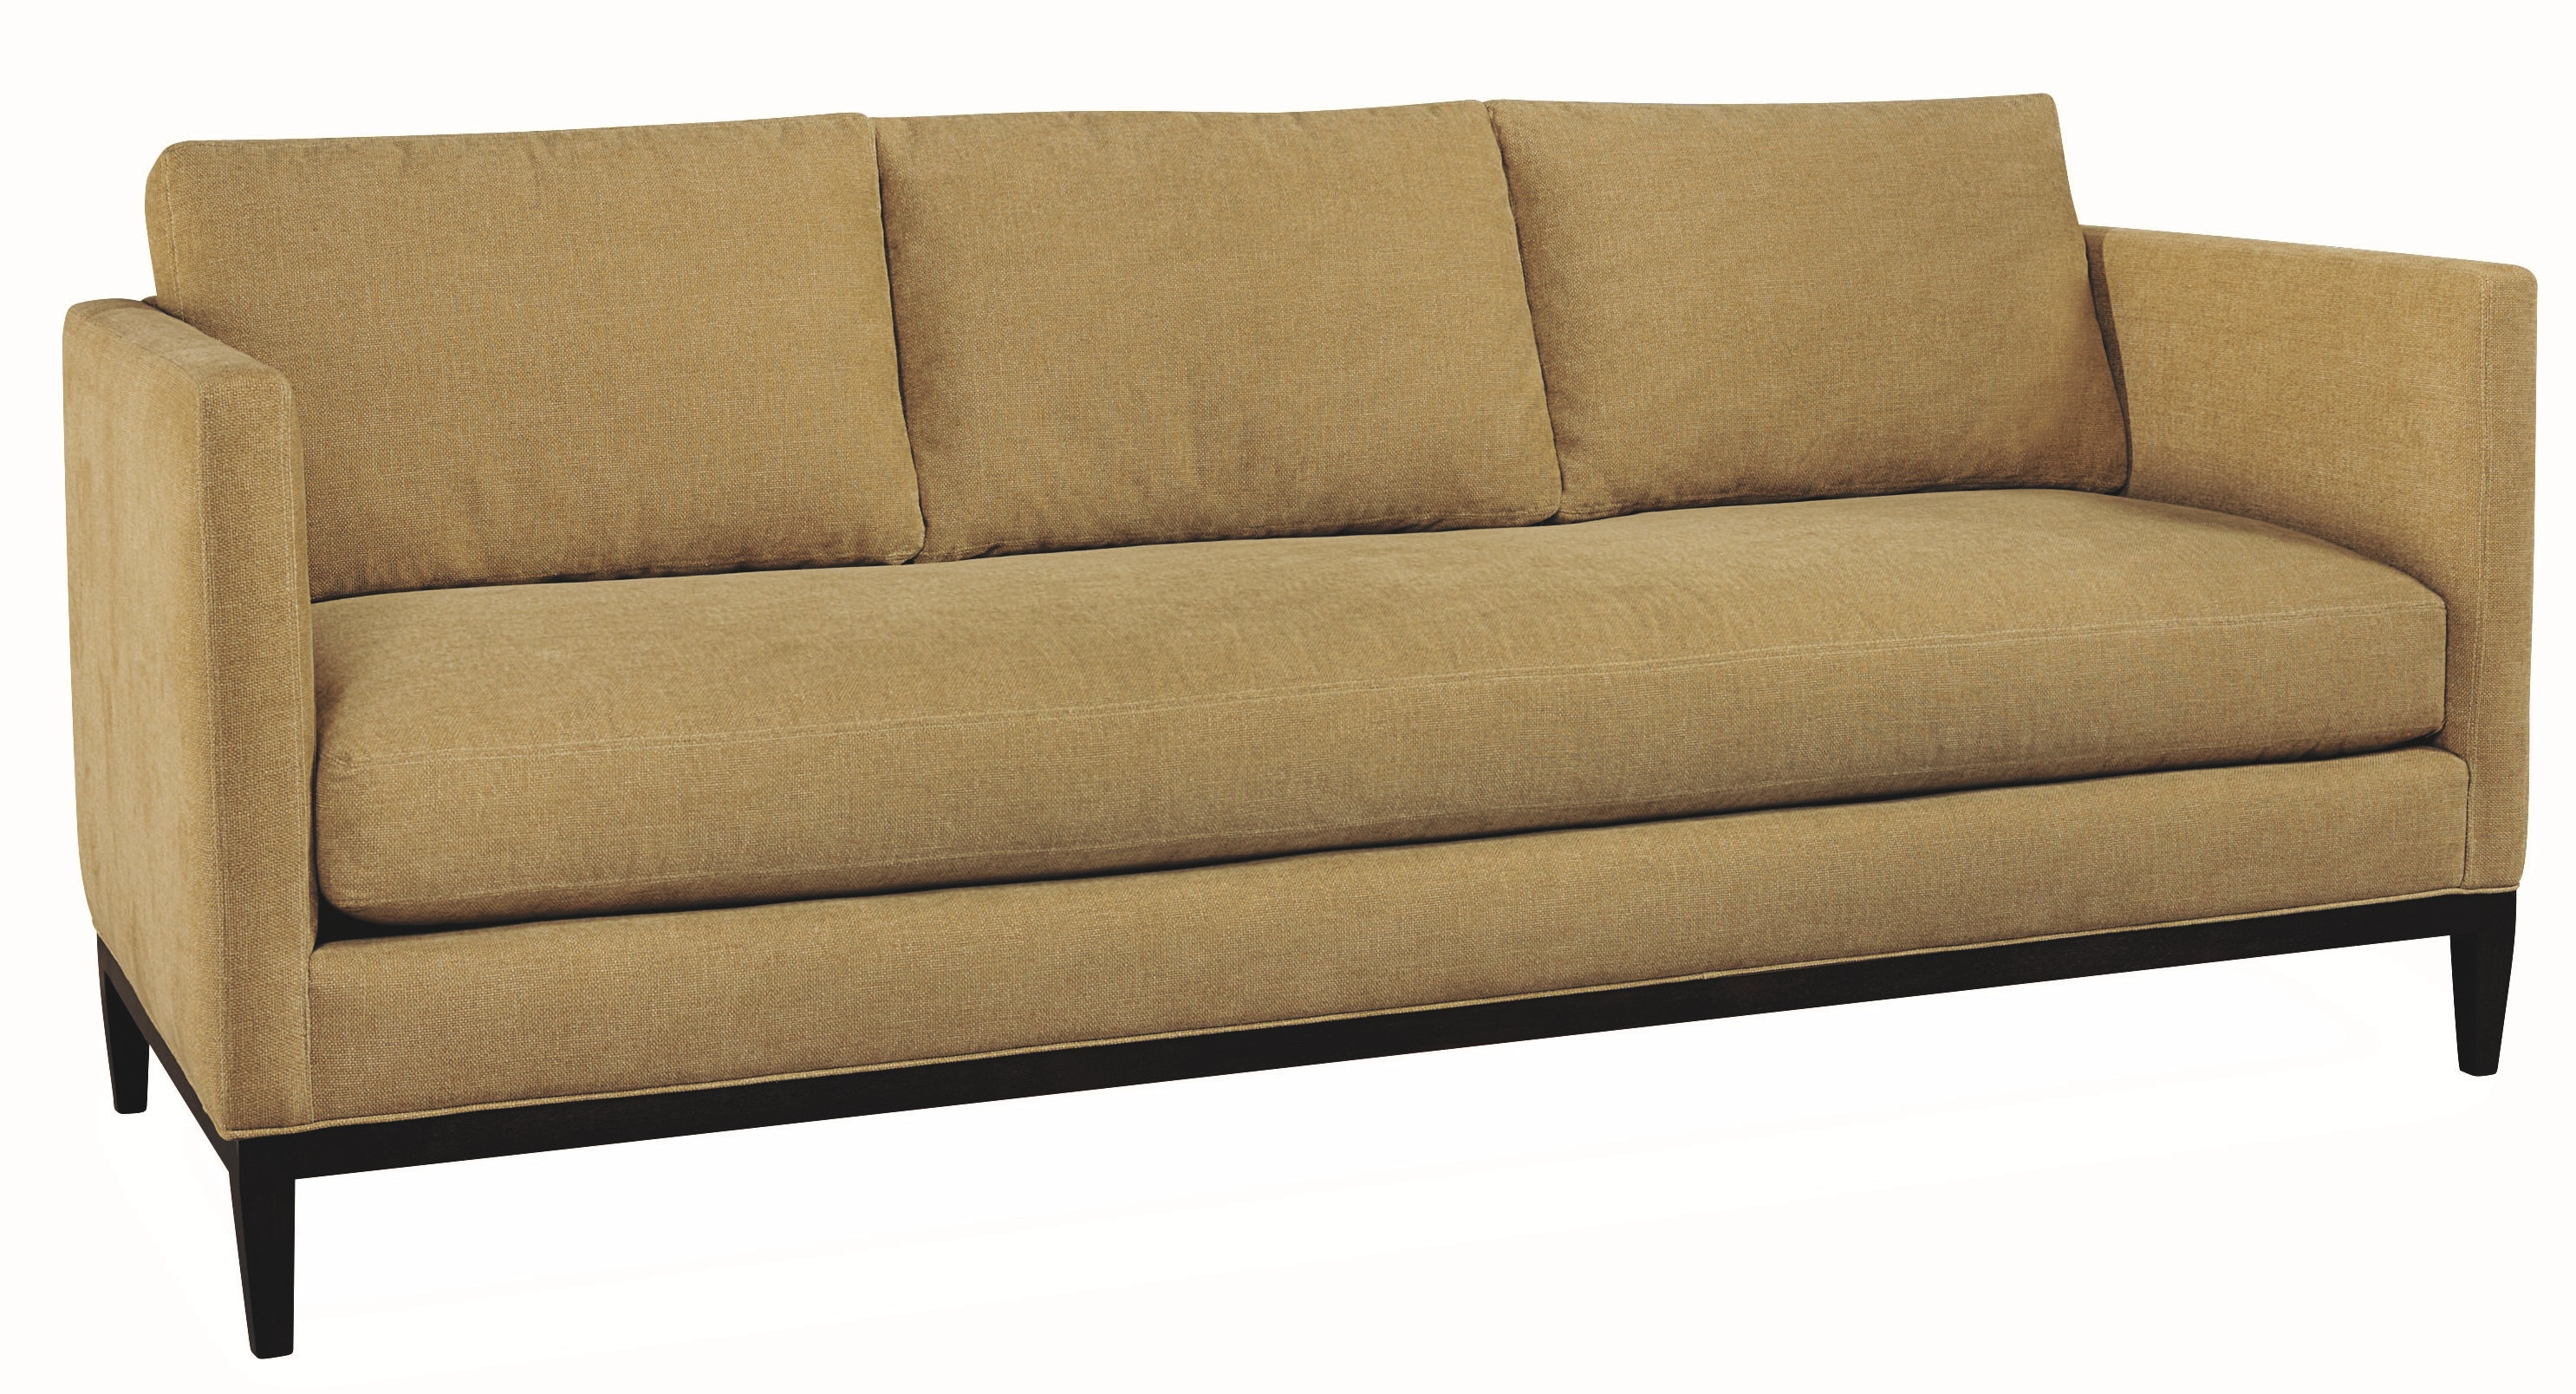 lee industries living room sofa 3583 03 home decor riverside home entertainment 45 tv console 2945 home